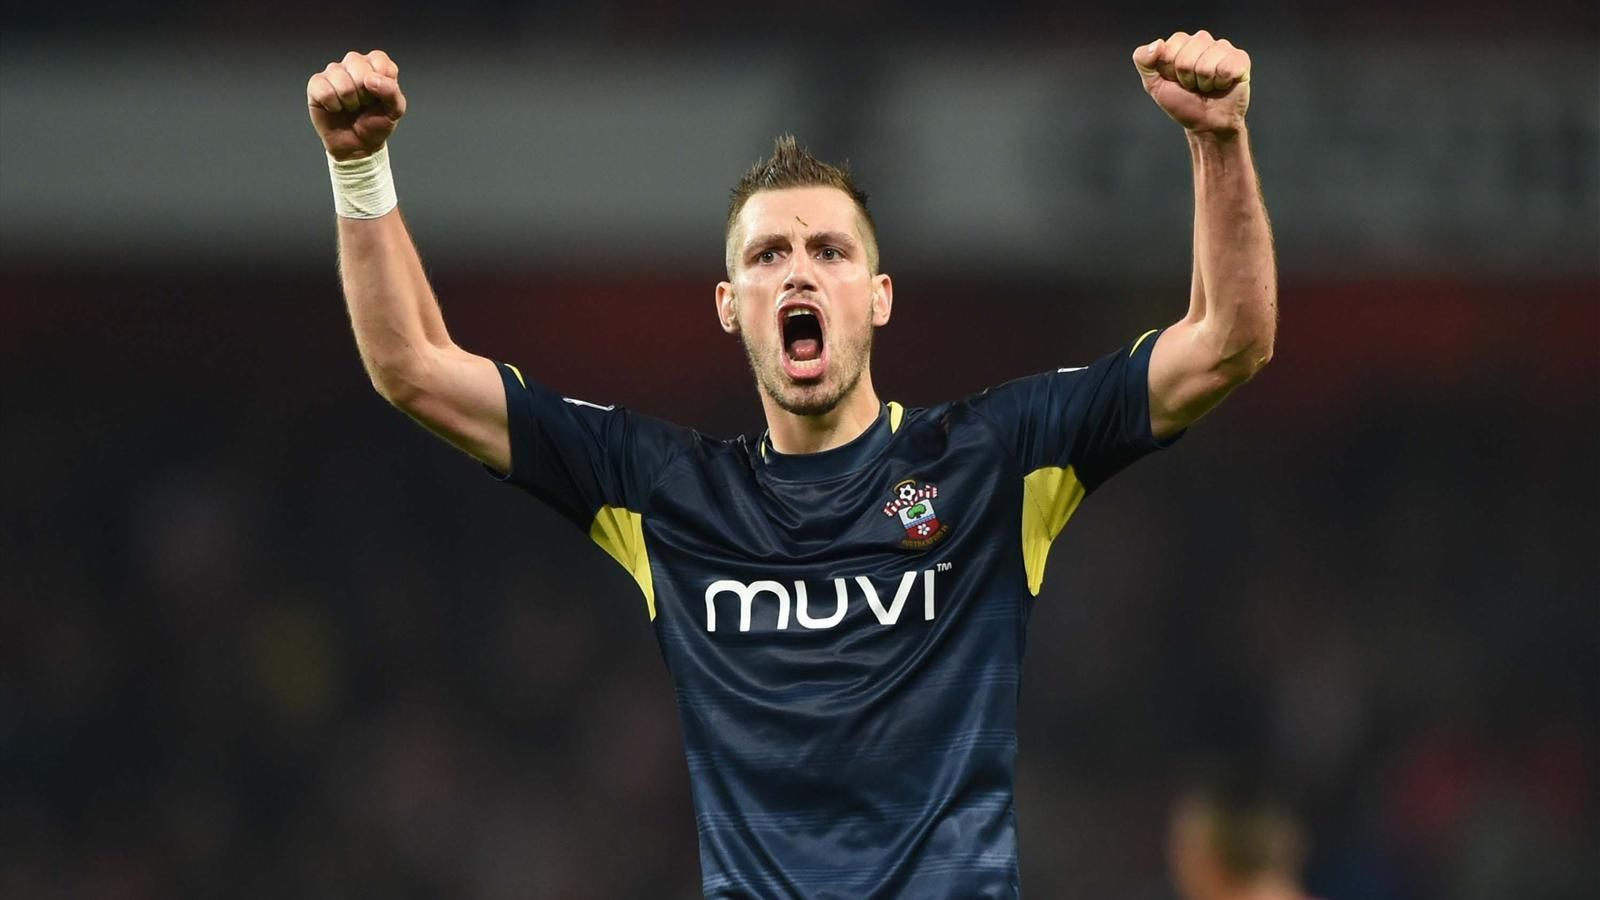 Koeman: United can have Schneiderlin… for the right price